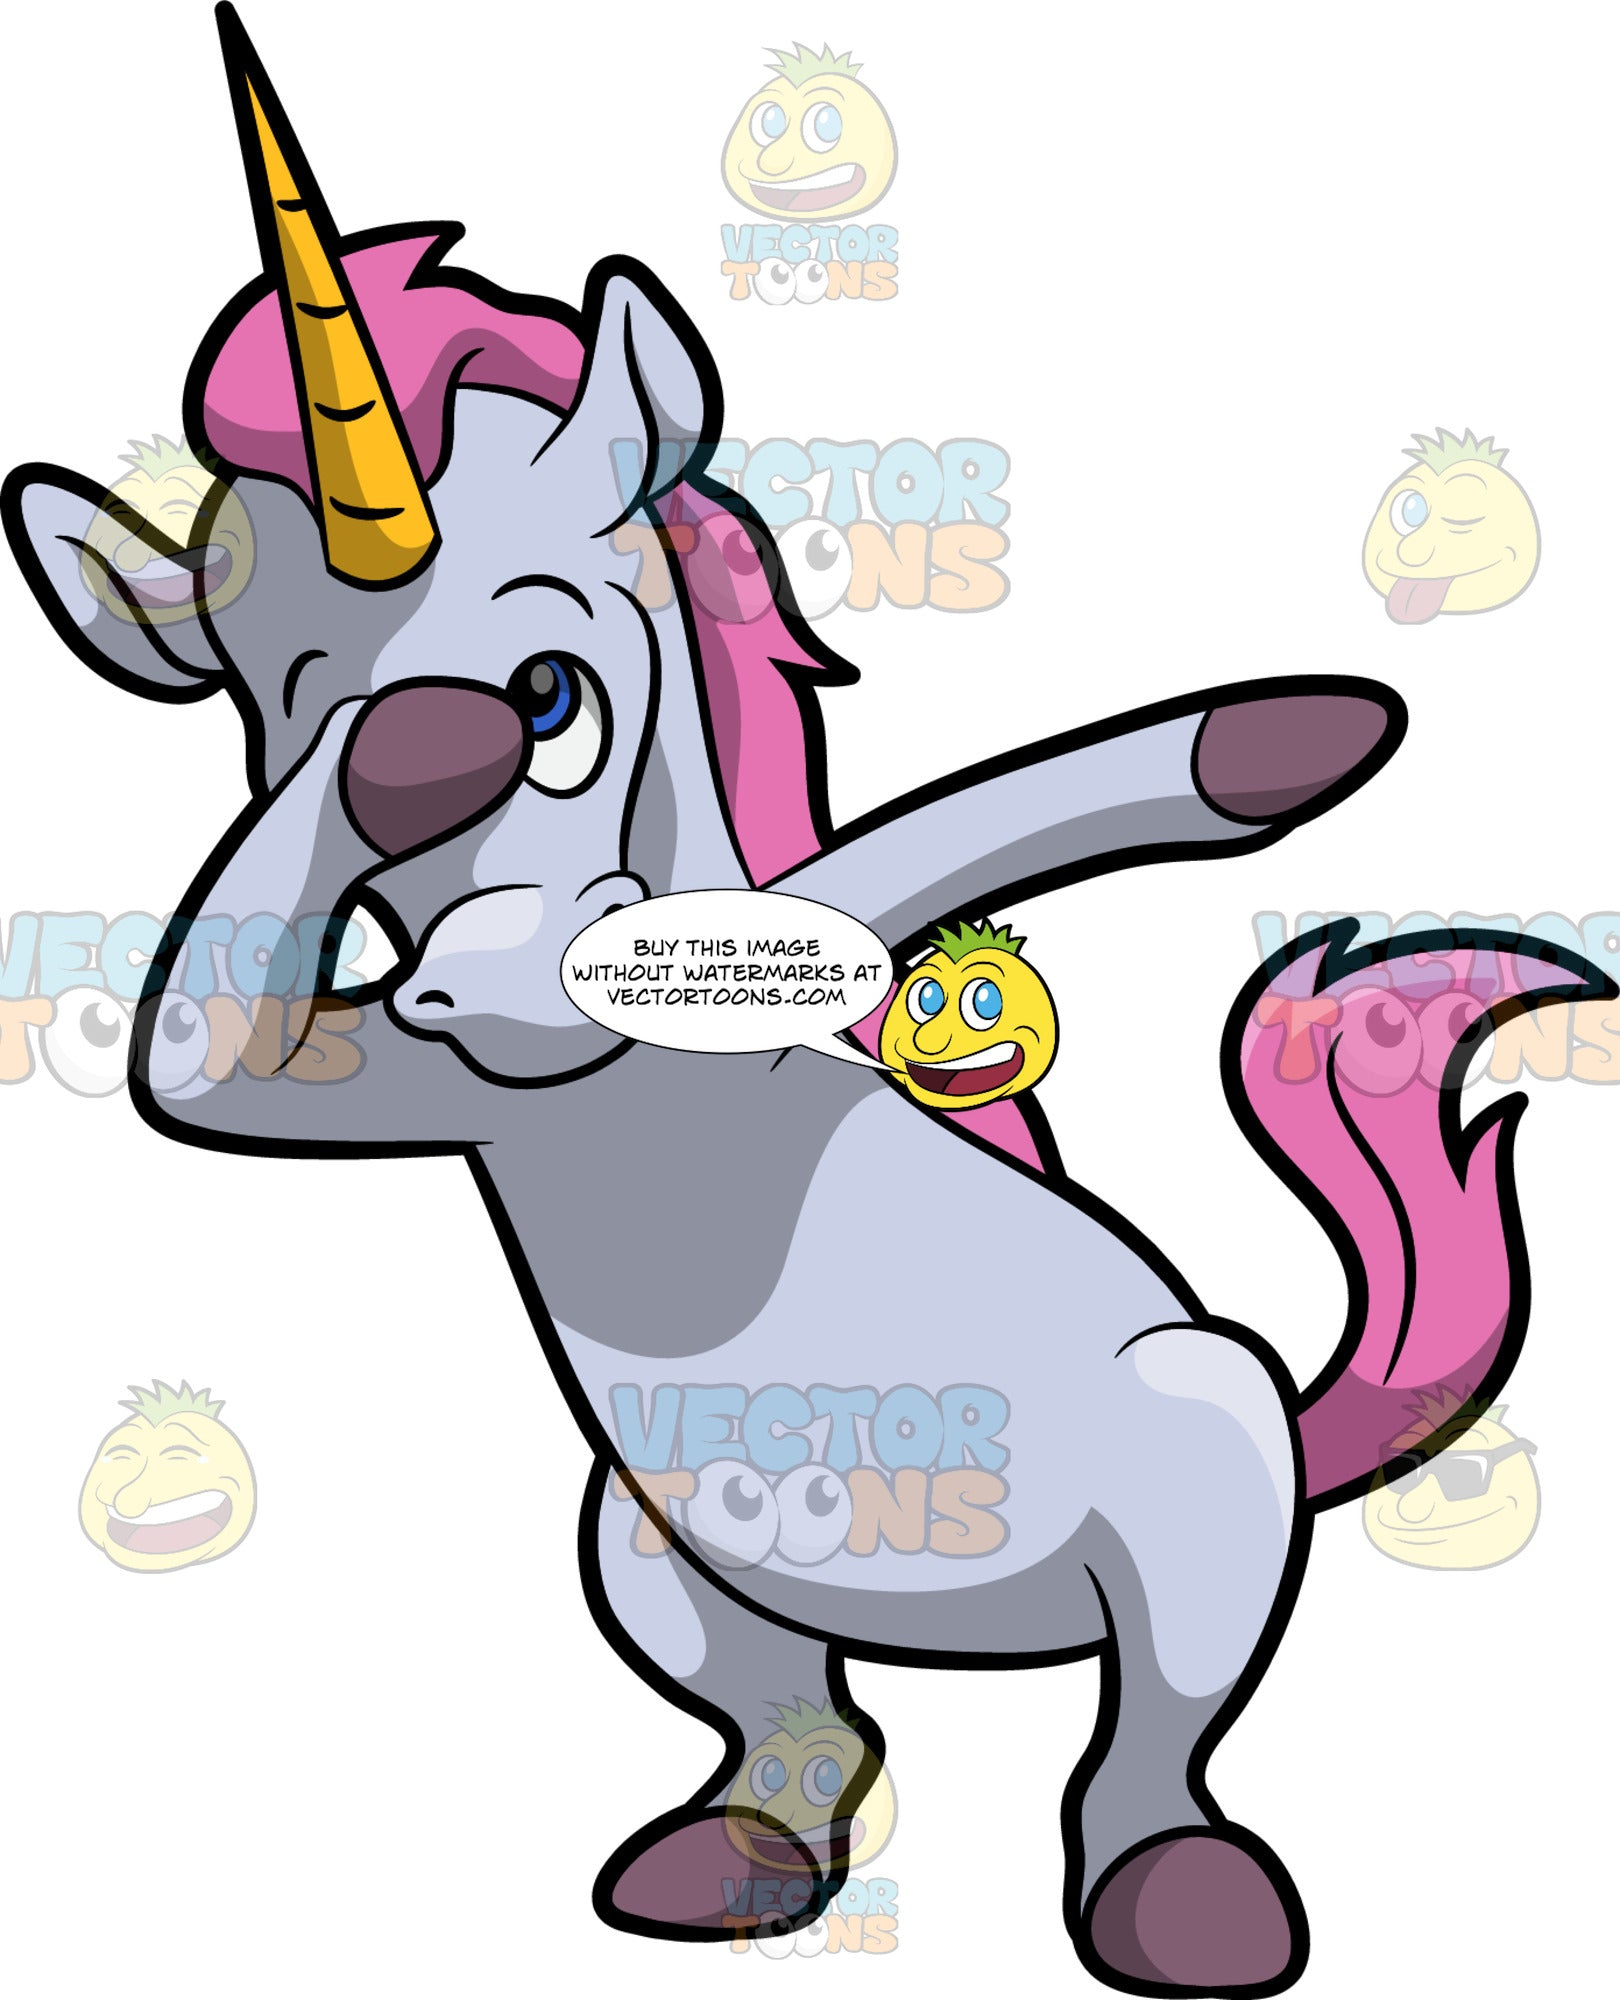 A Dabbing Unicorn